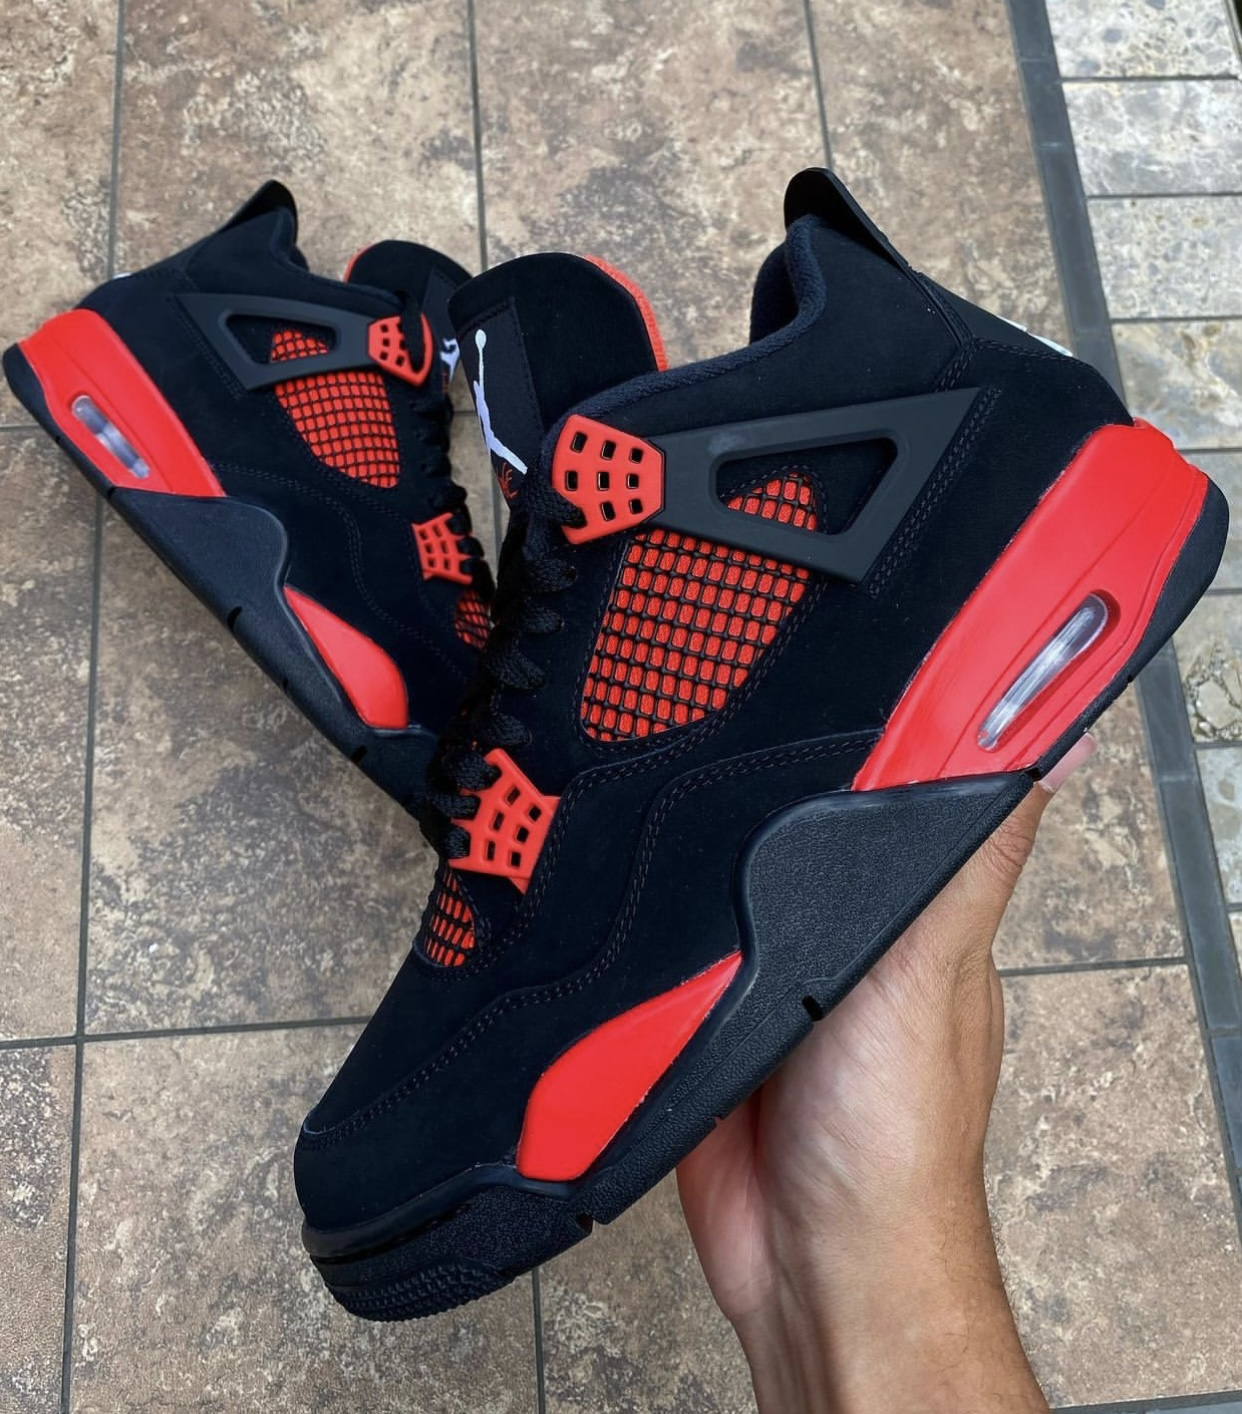 Nikesneakers, LLC Red Thunder CT8527-016 Release Date Pricing